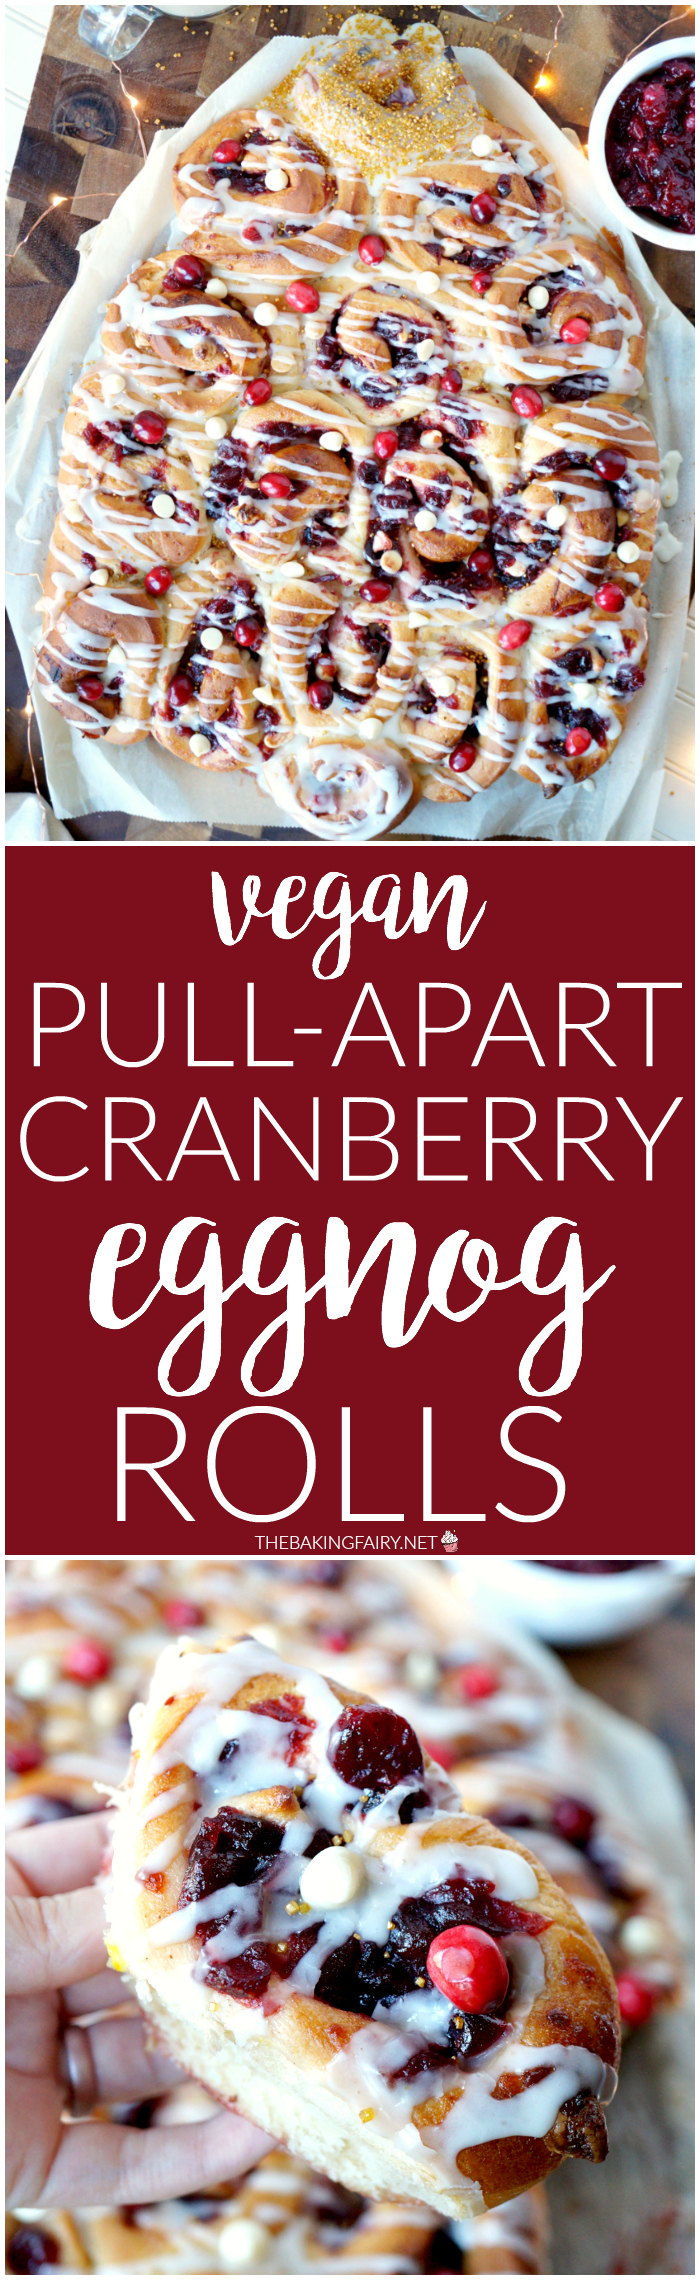 vegan pull-apart cranberry eggnog rolls | The Baking Fairy